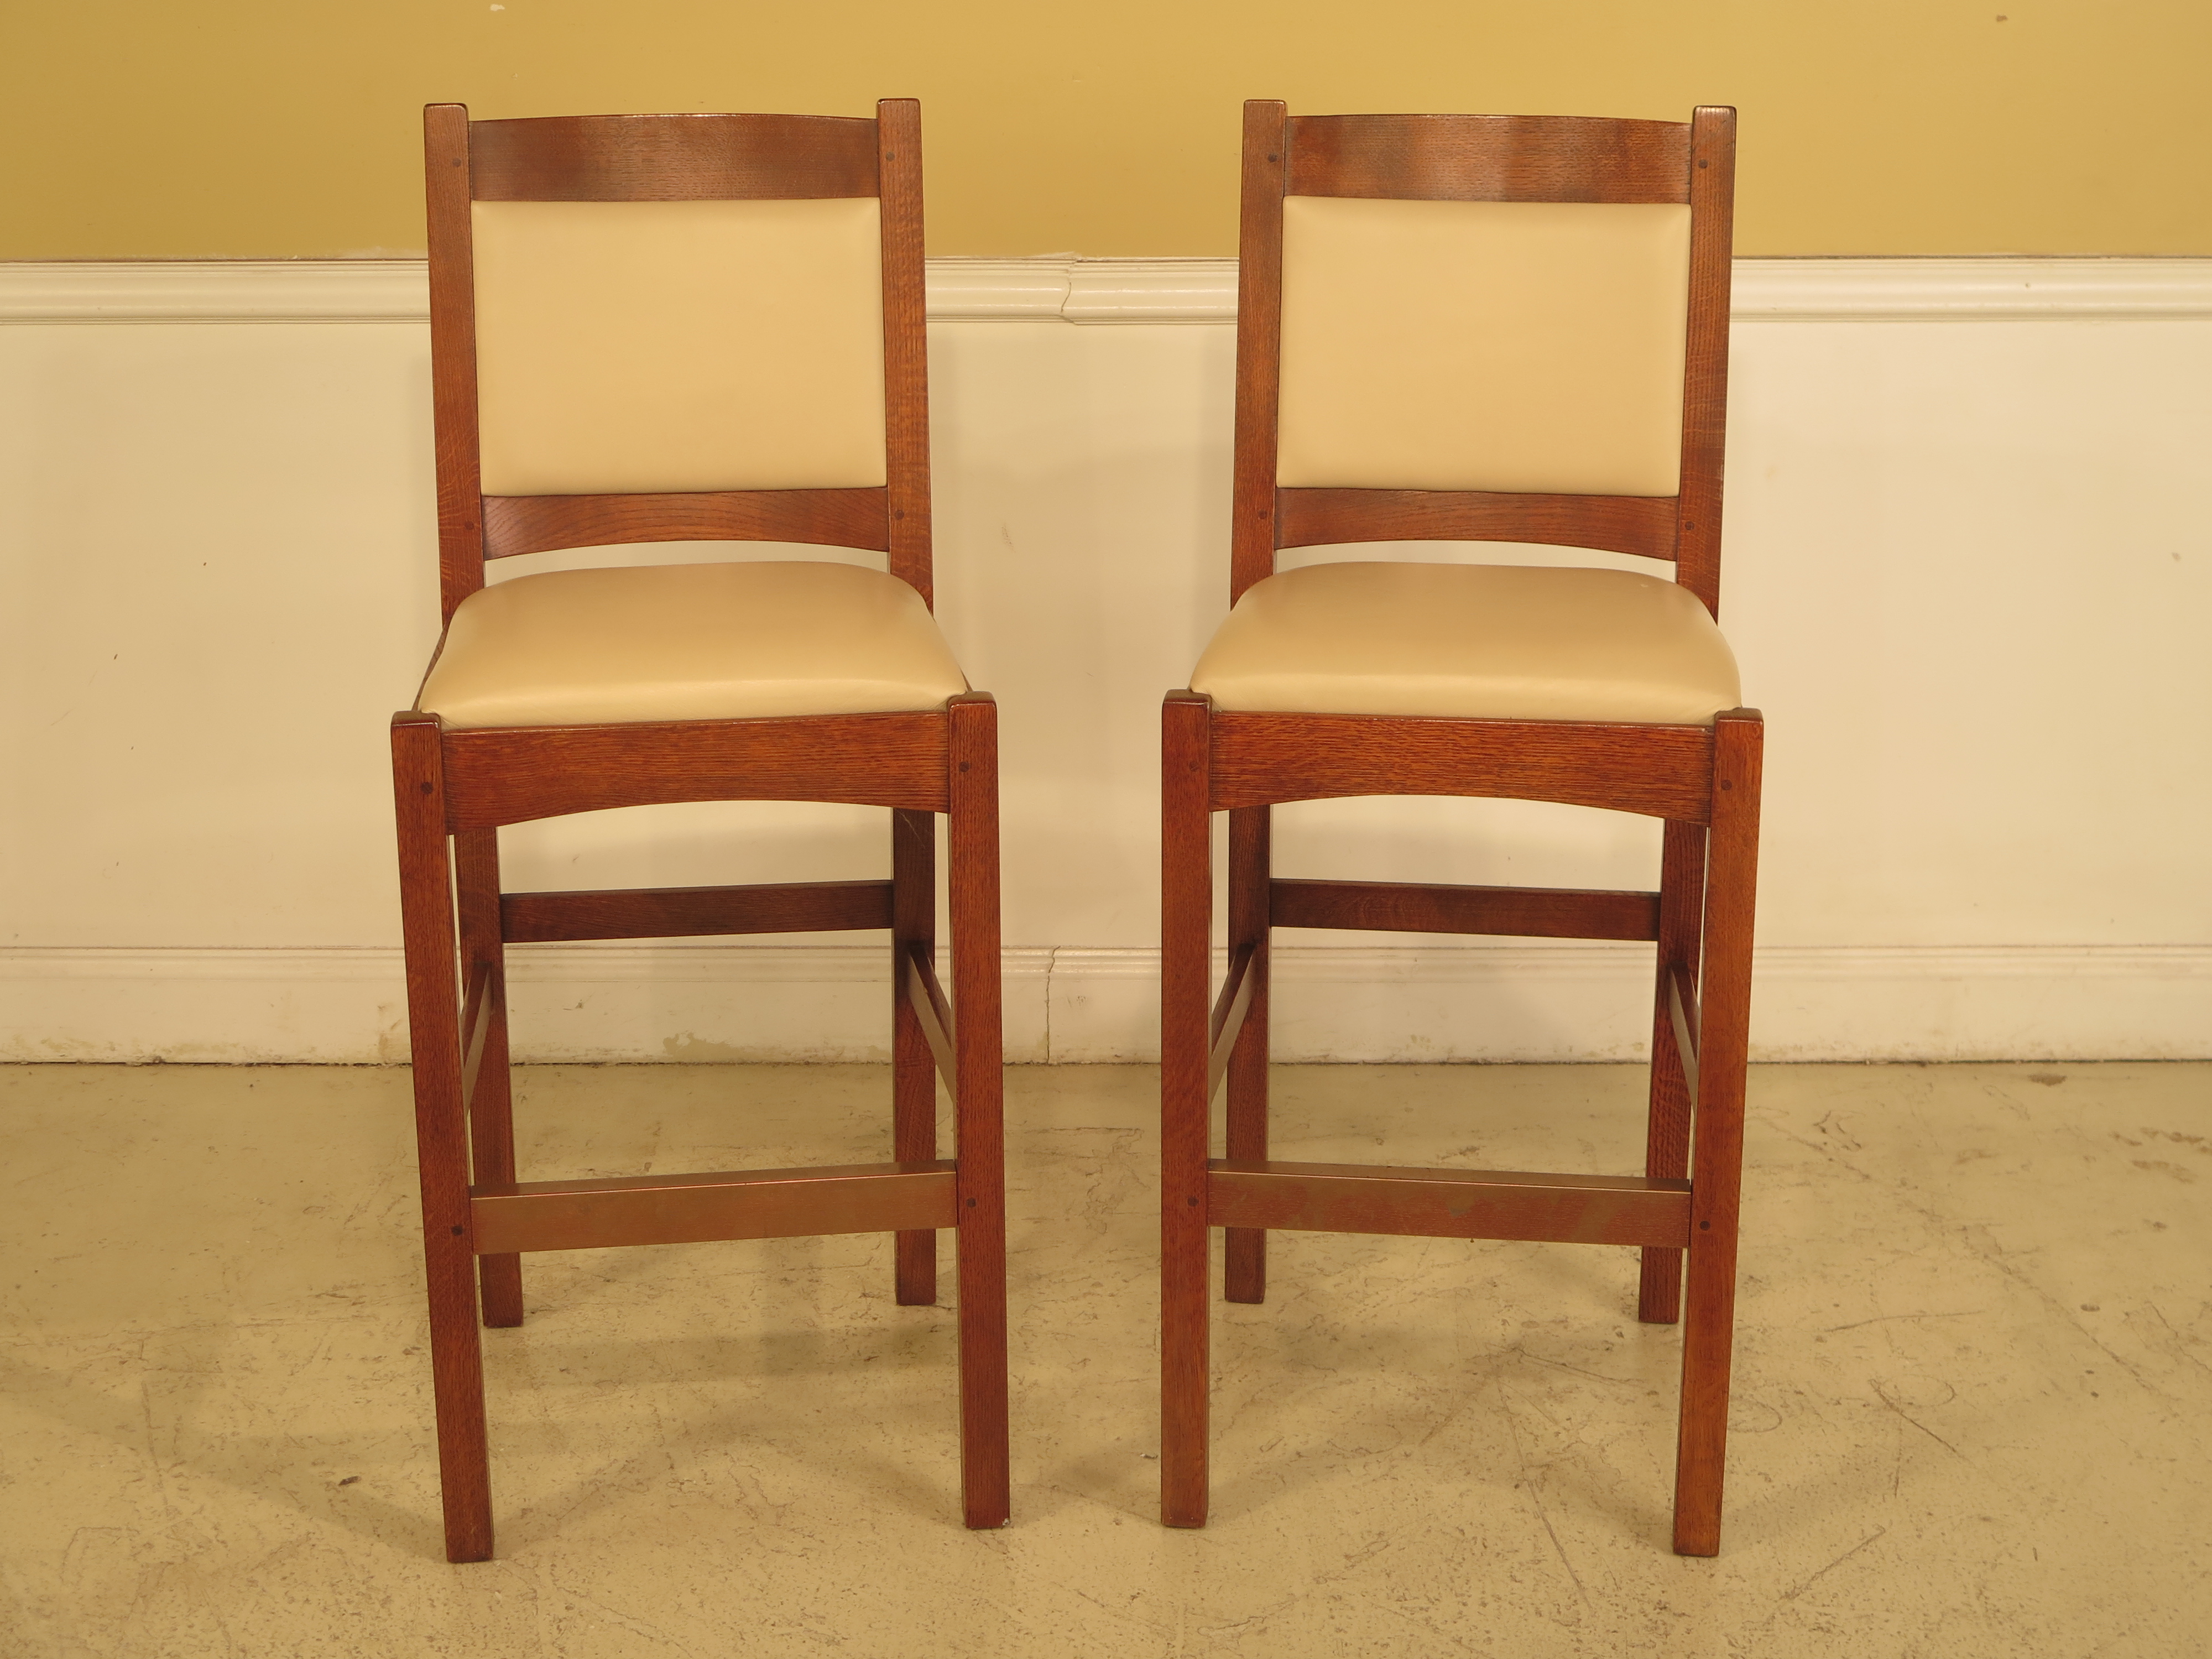 set of 4 bar stools. STICKLEY Set Of 4 Bar Stool Counter Chairs In Leather Age: C.2006 Details Stools